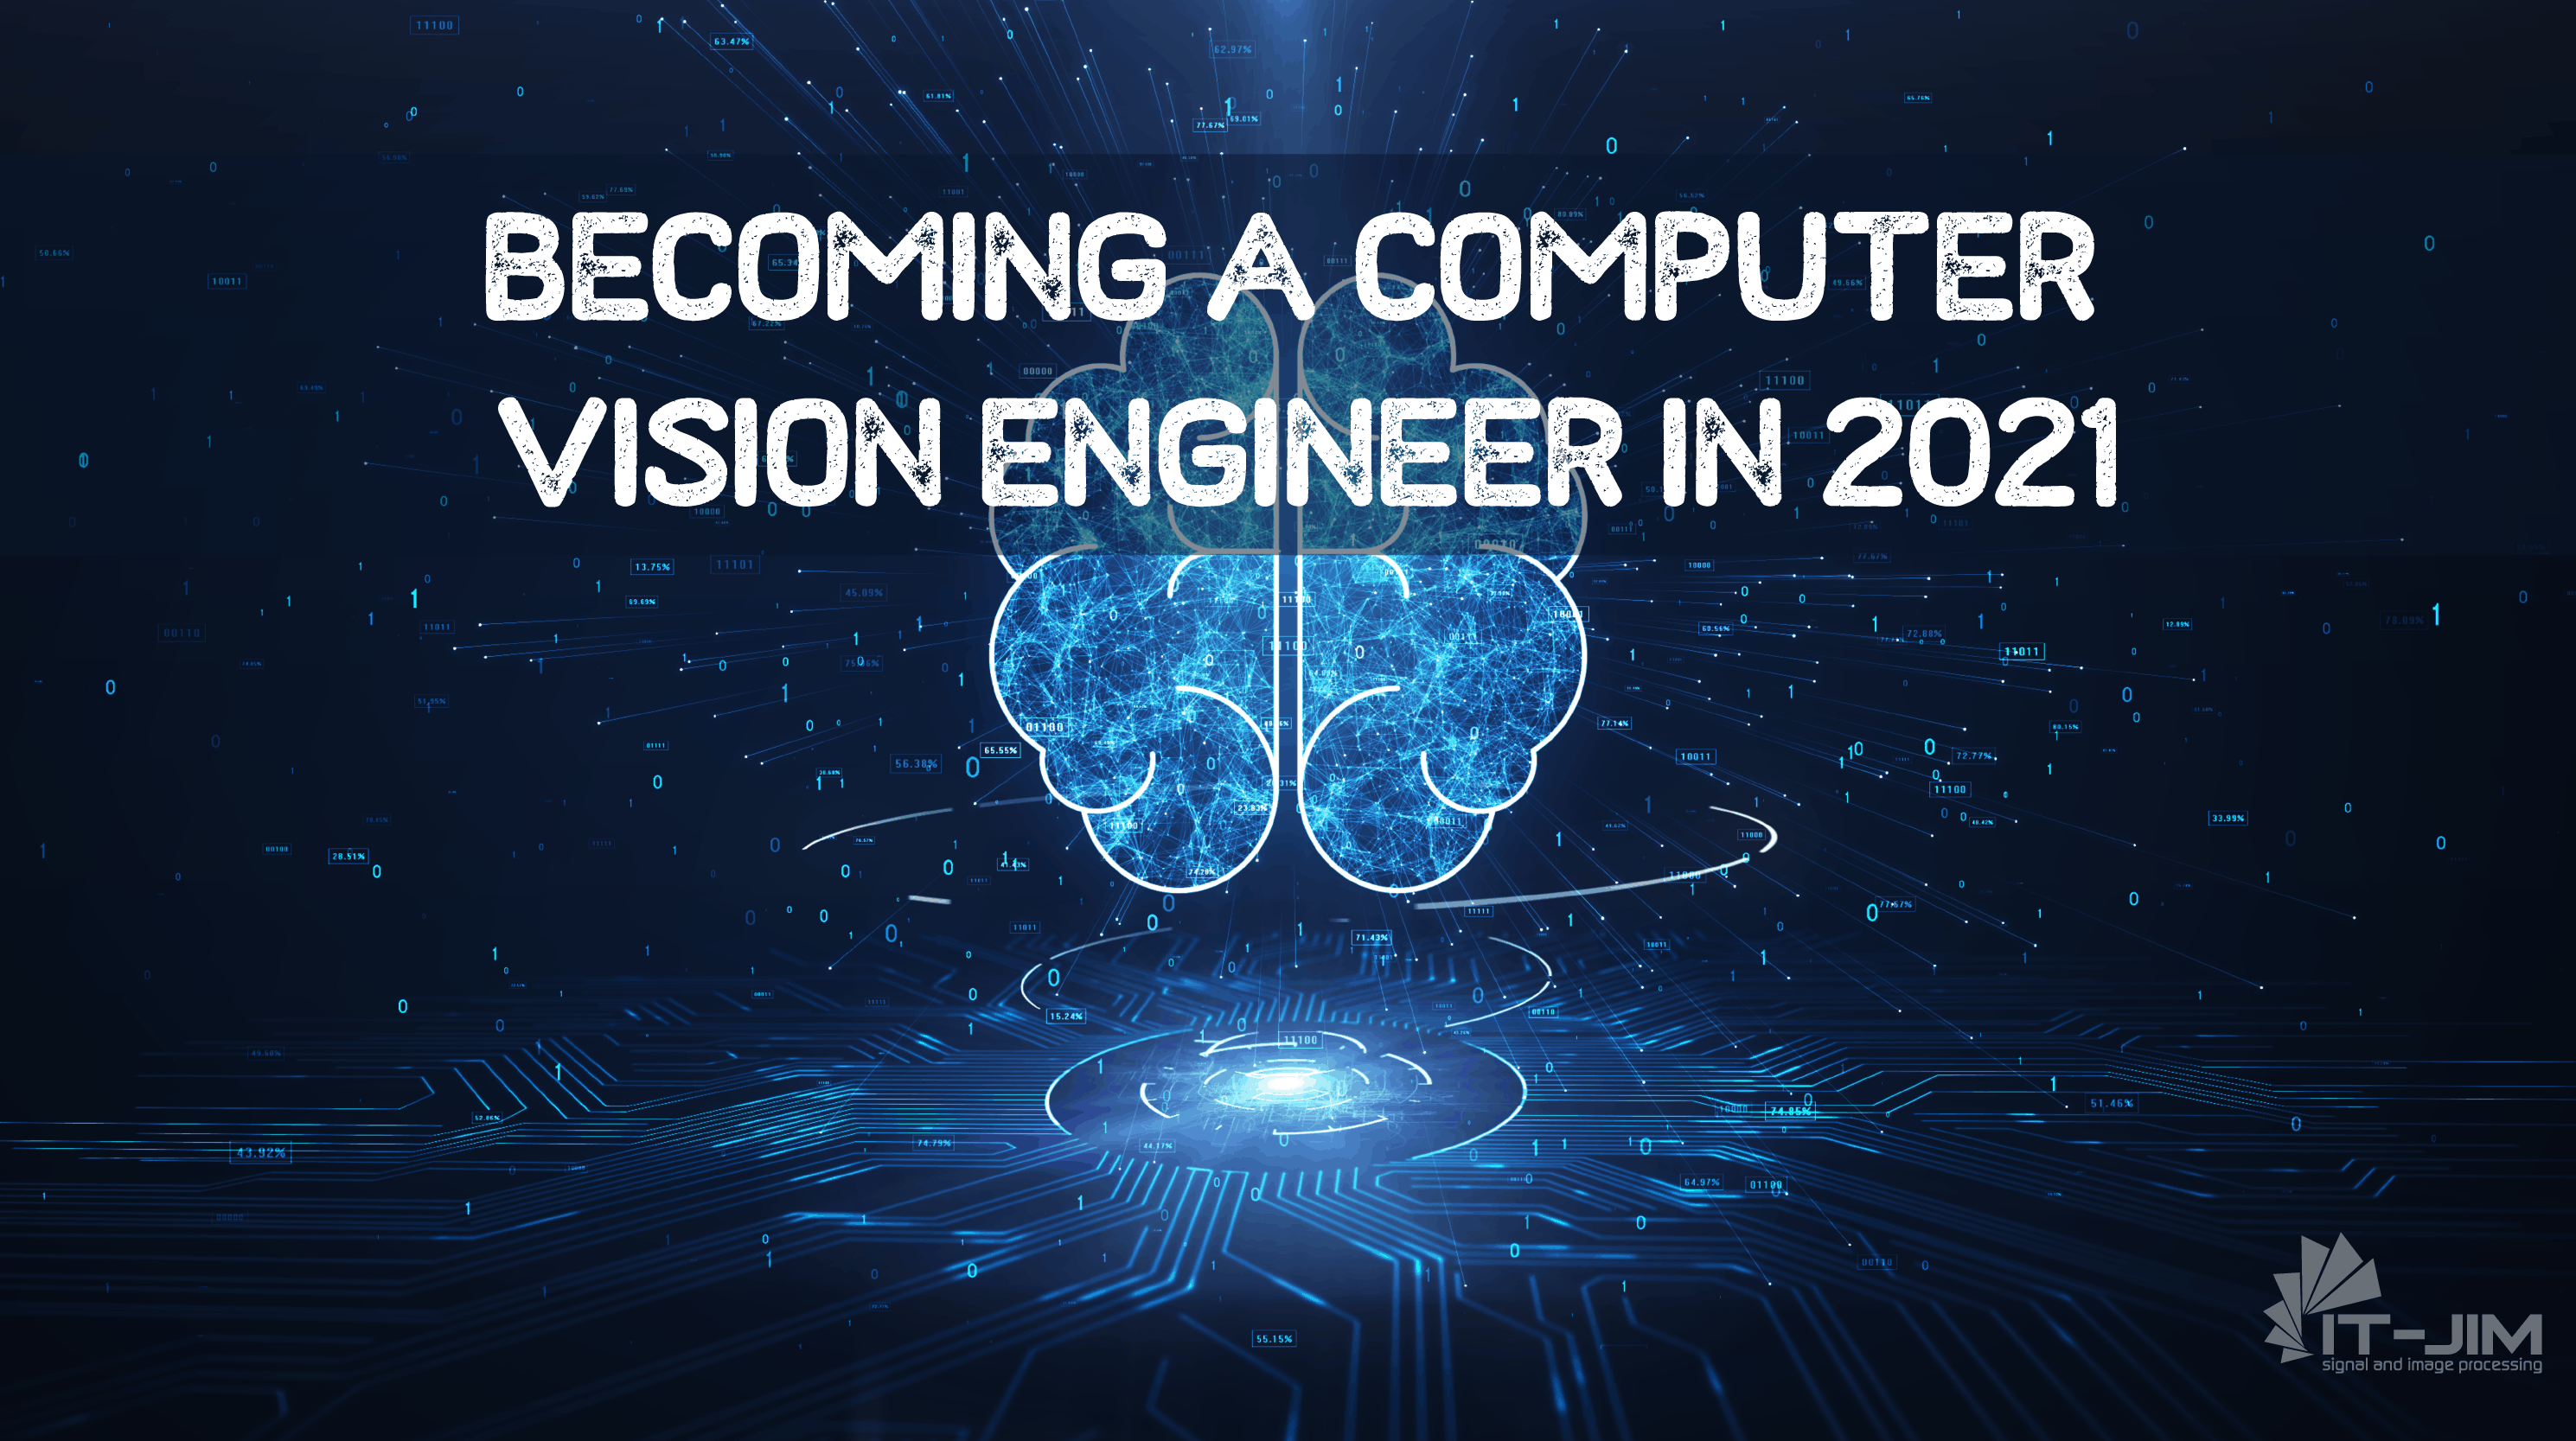 Becoming a Computer Vision Engineer in 2021